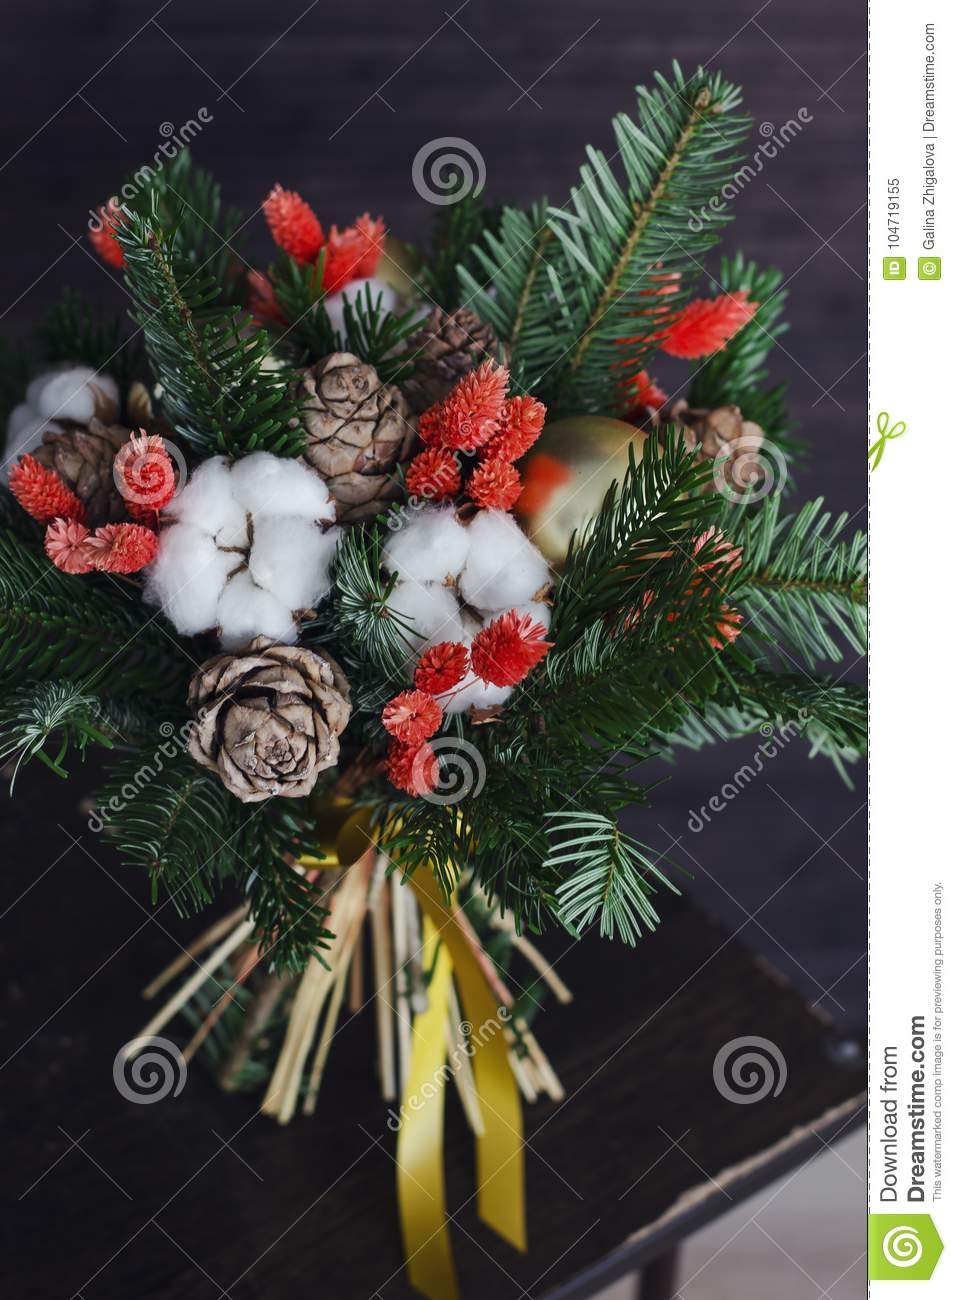 The Winter Bouquet Made Of Fir Branches Christmas Balls And Dried Flowers Stock Image Image Of Cotton Handmade 104719155